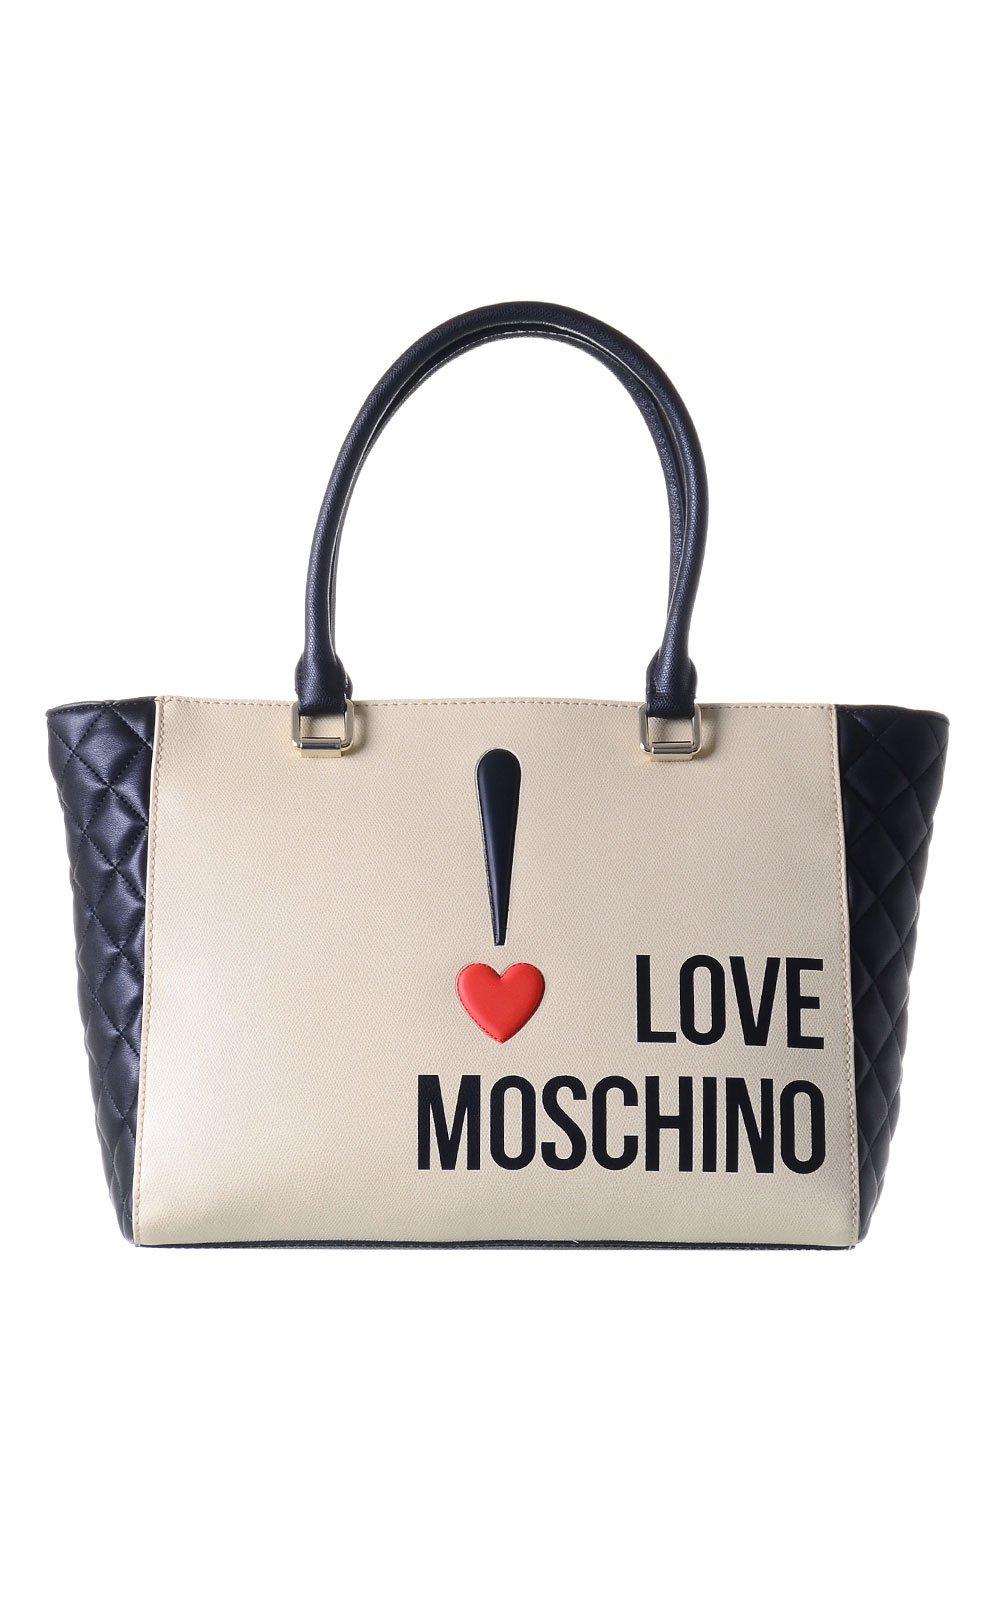 Love Moschino Exclamation Mark ! Tote, Black /Ivory